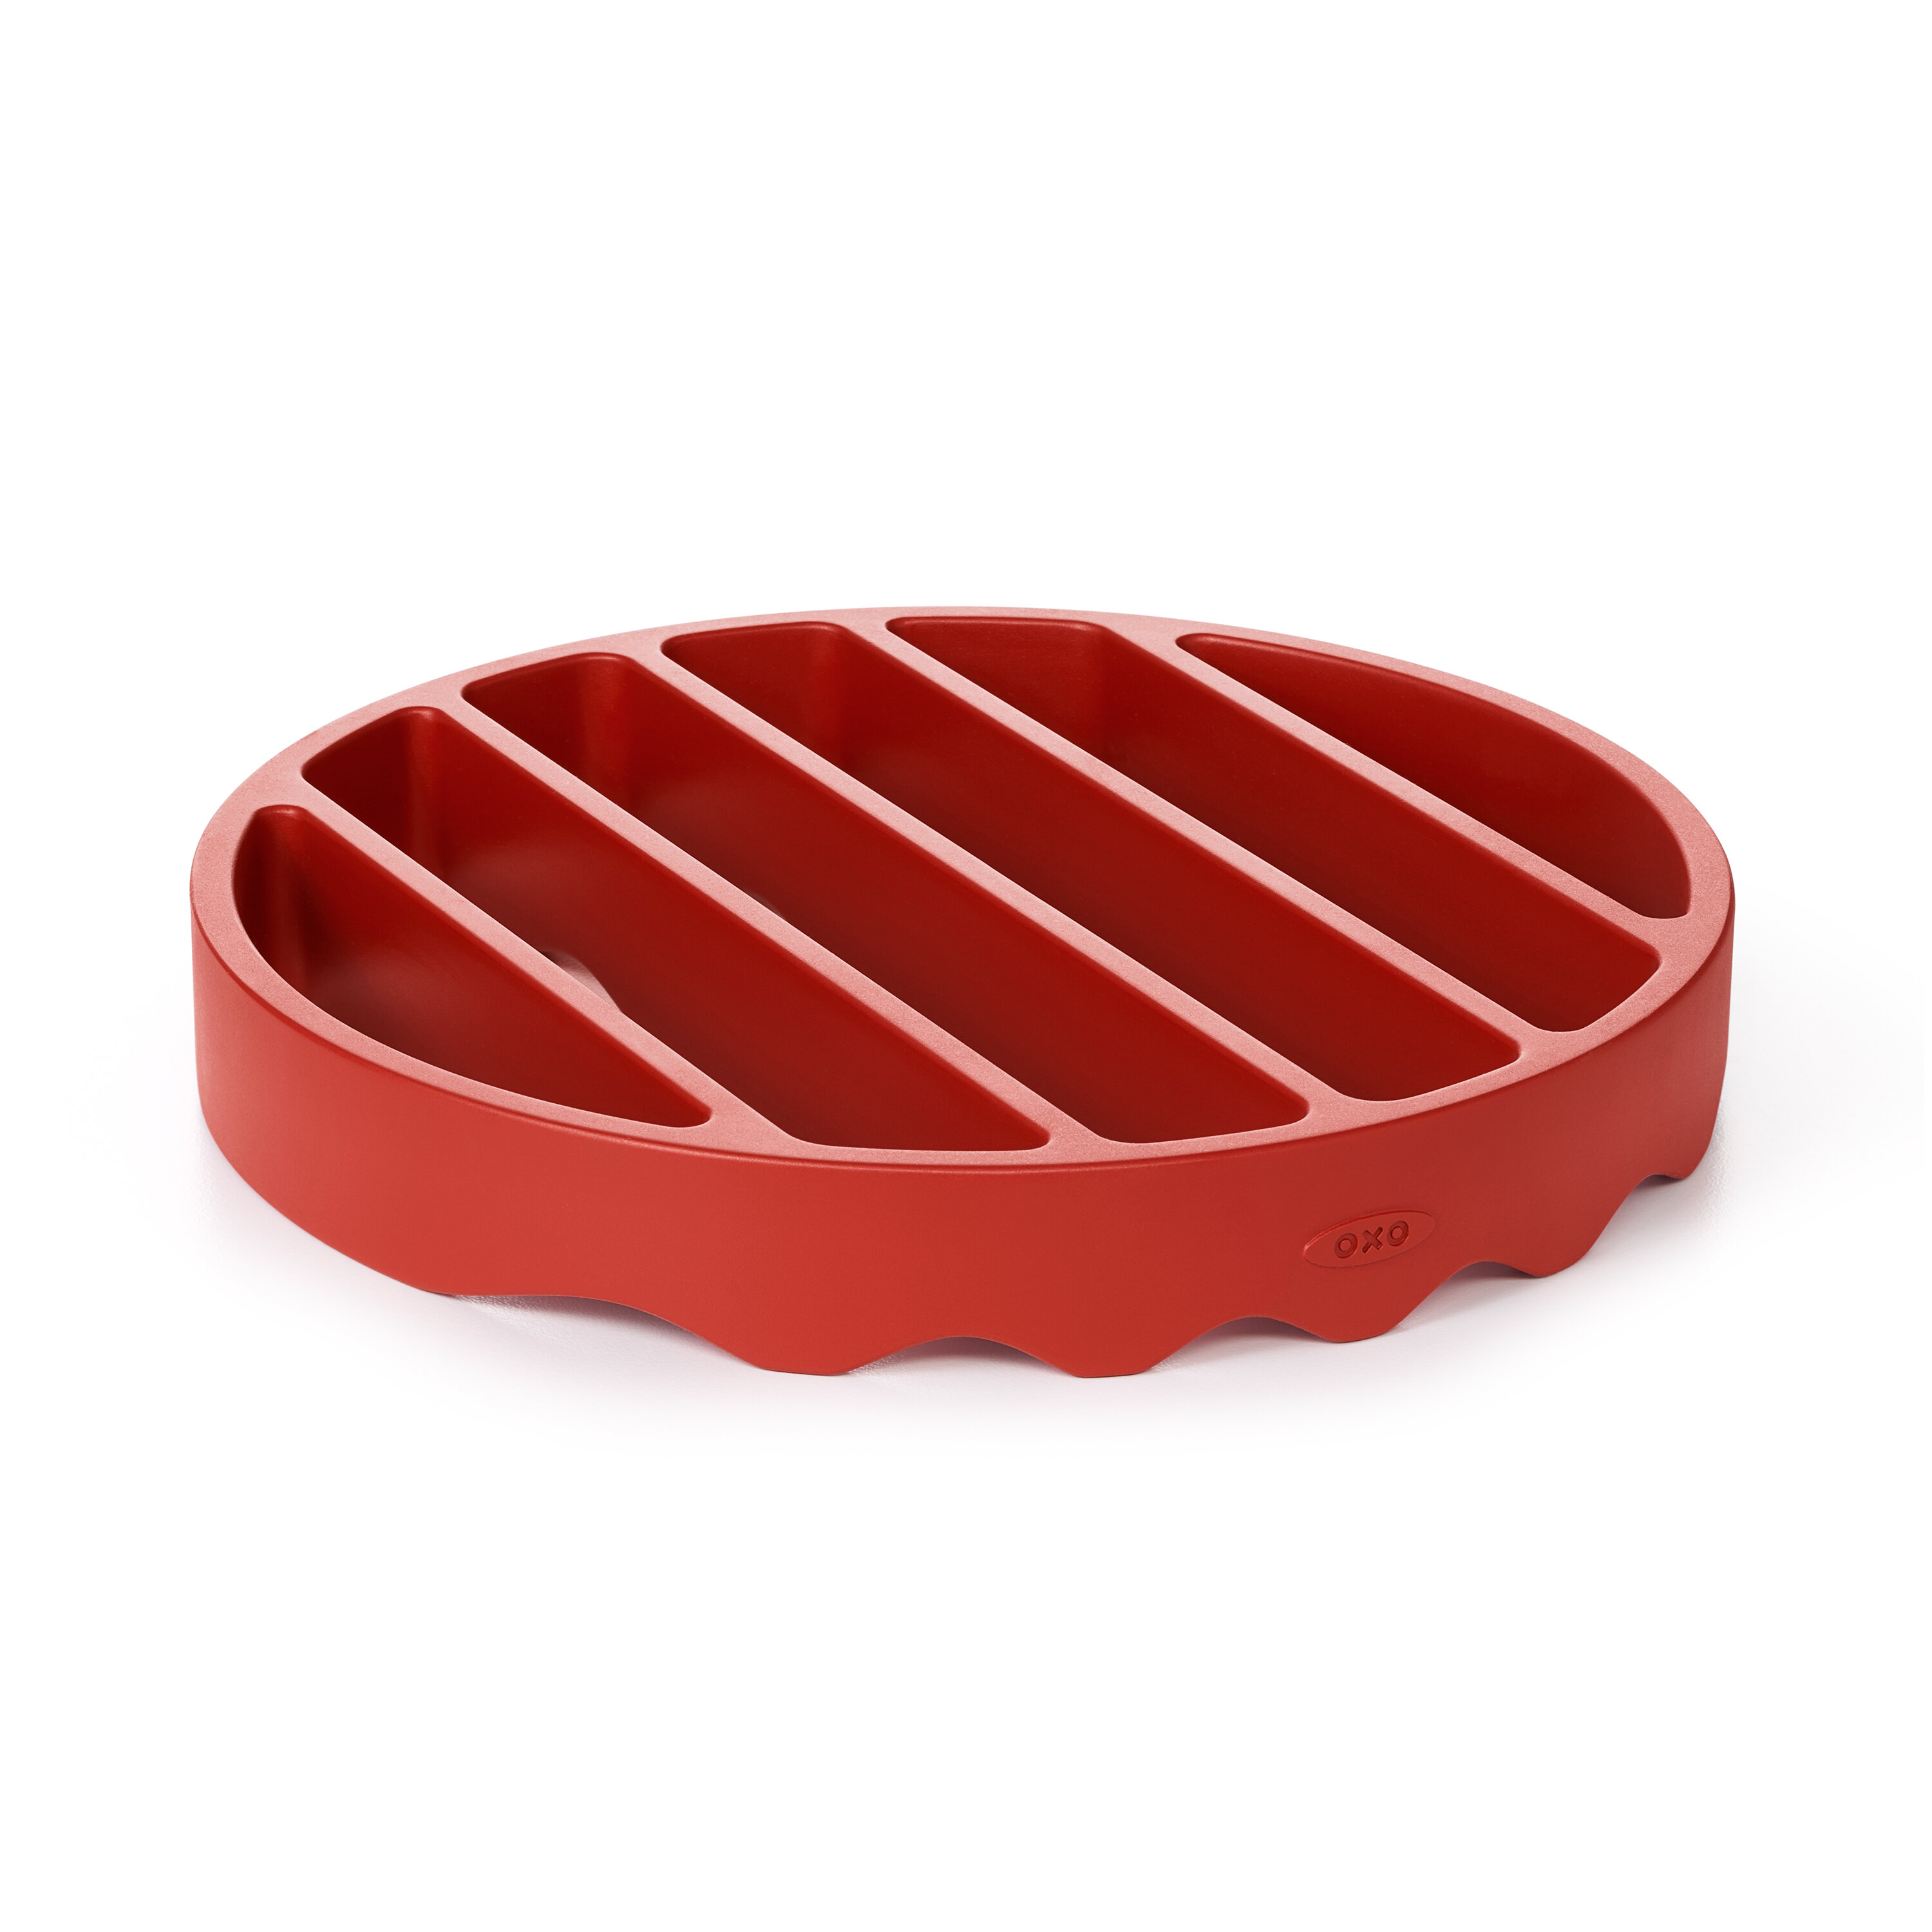 gg pack silicone oxo roasting tools products baking rack cooking and nylon